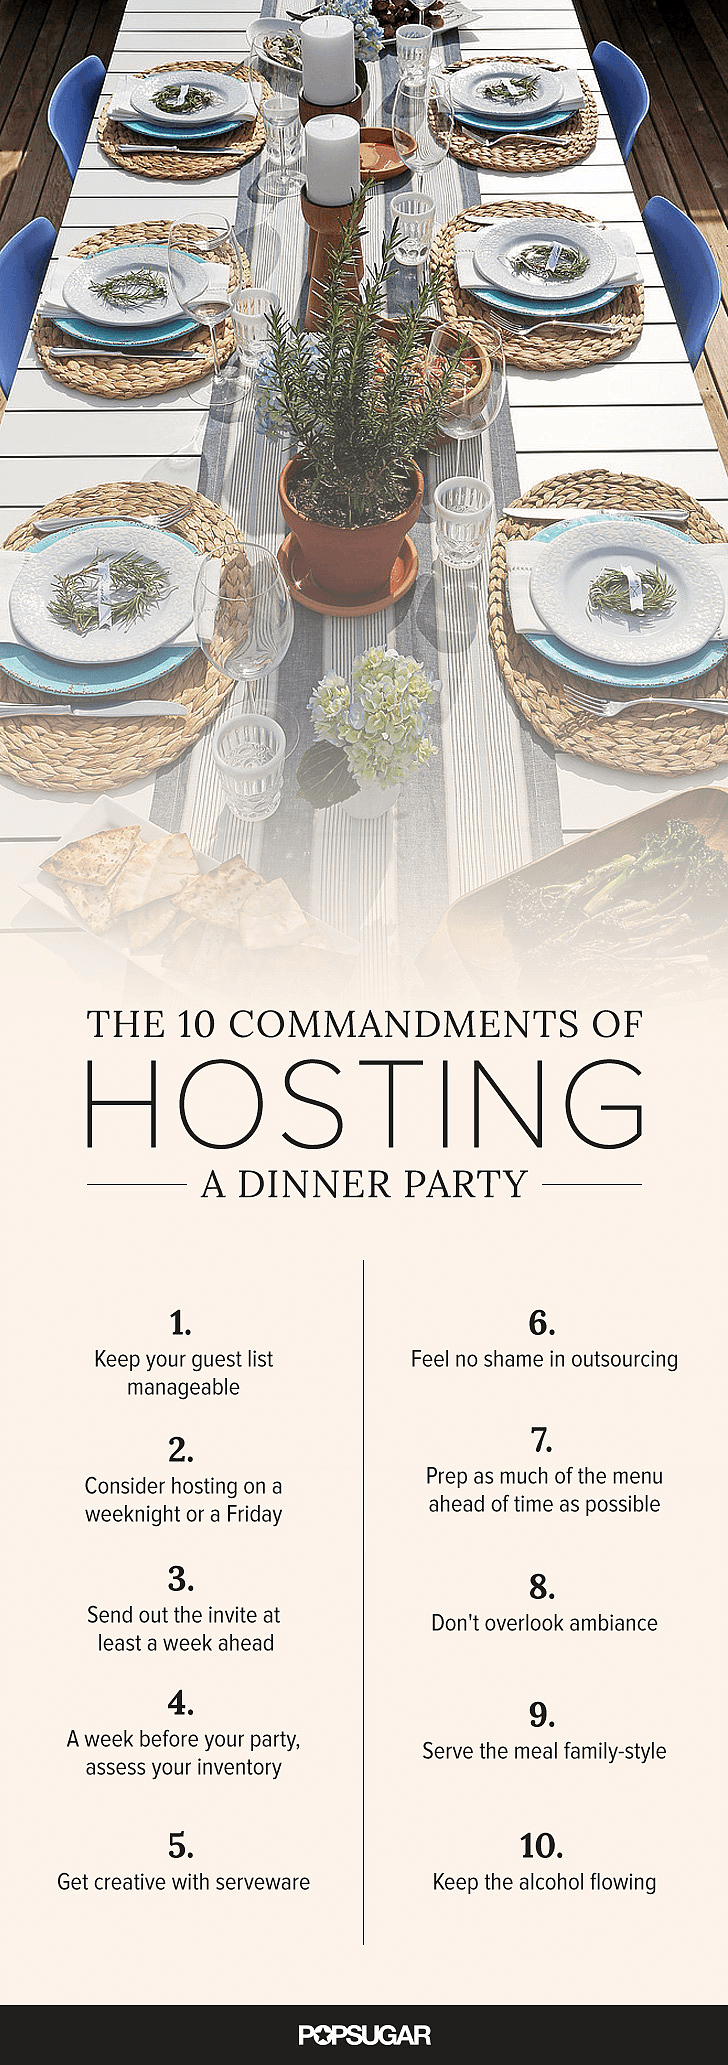 Hosting A Dinner Party how to host a dinner party | popsugar food